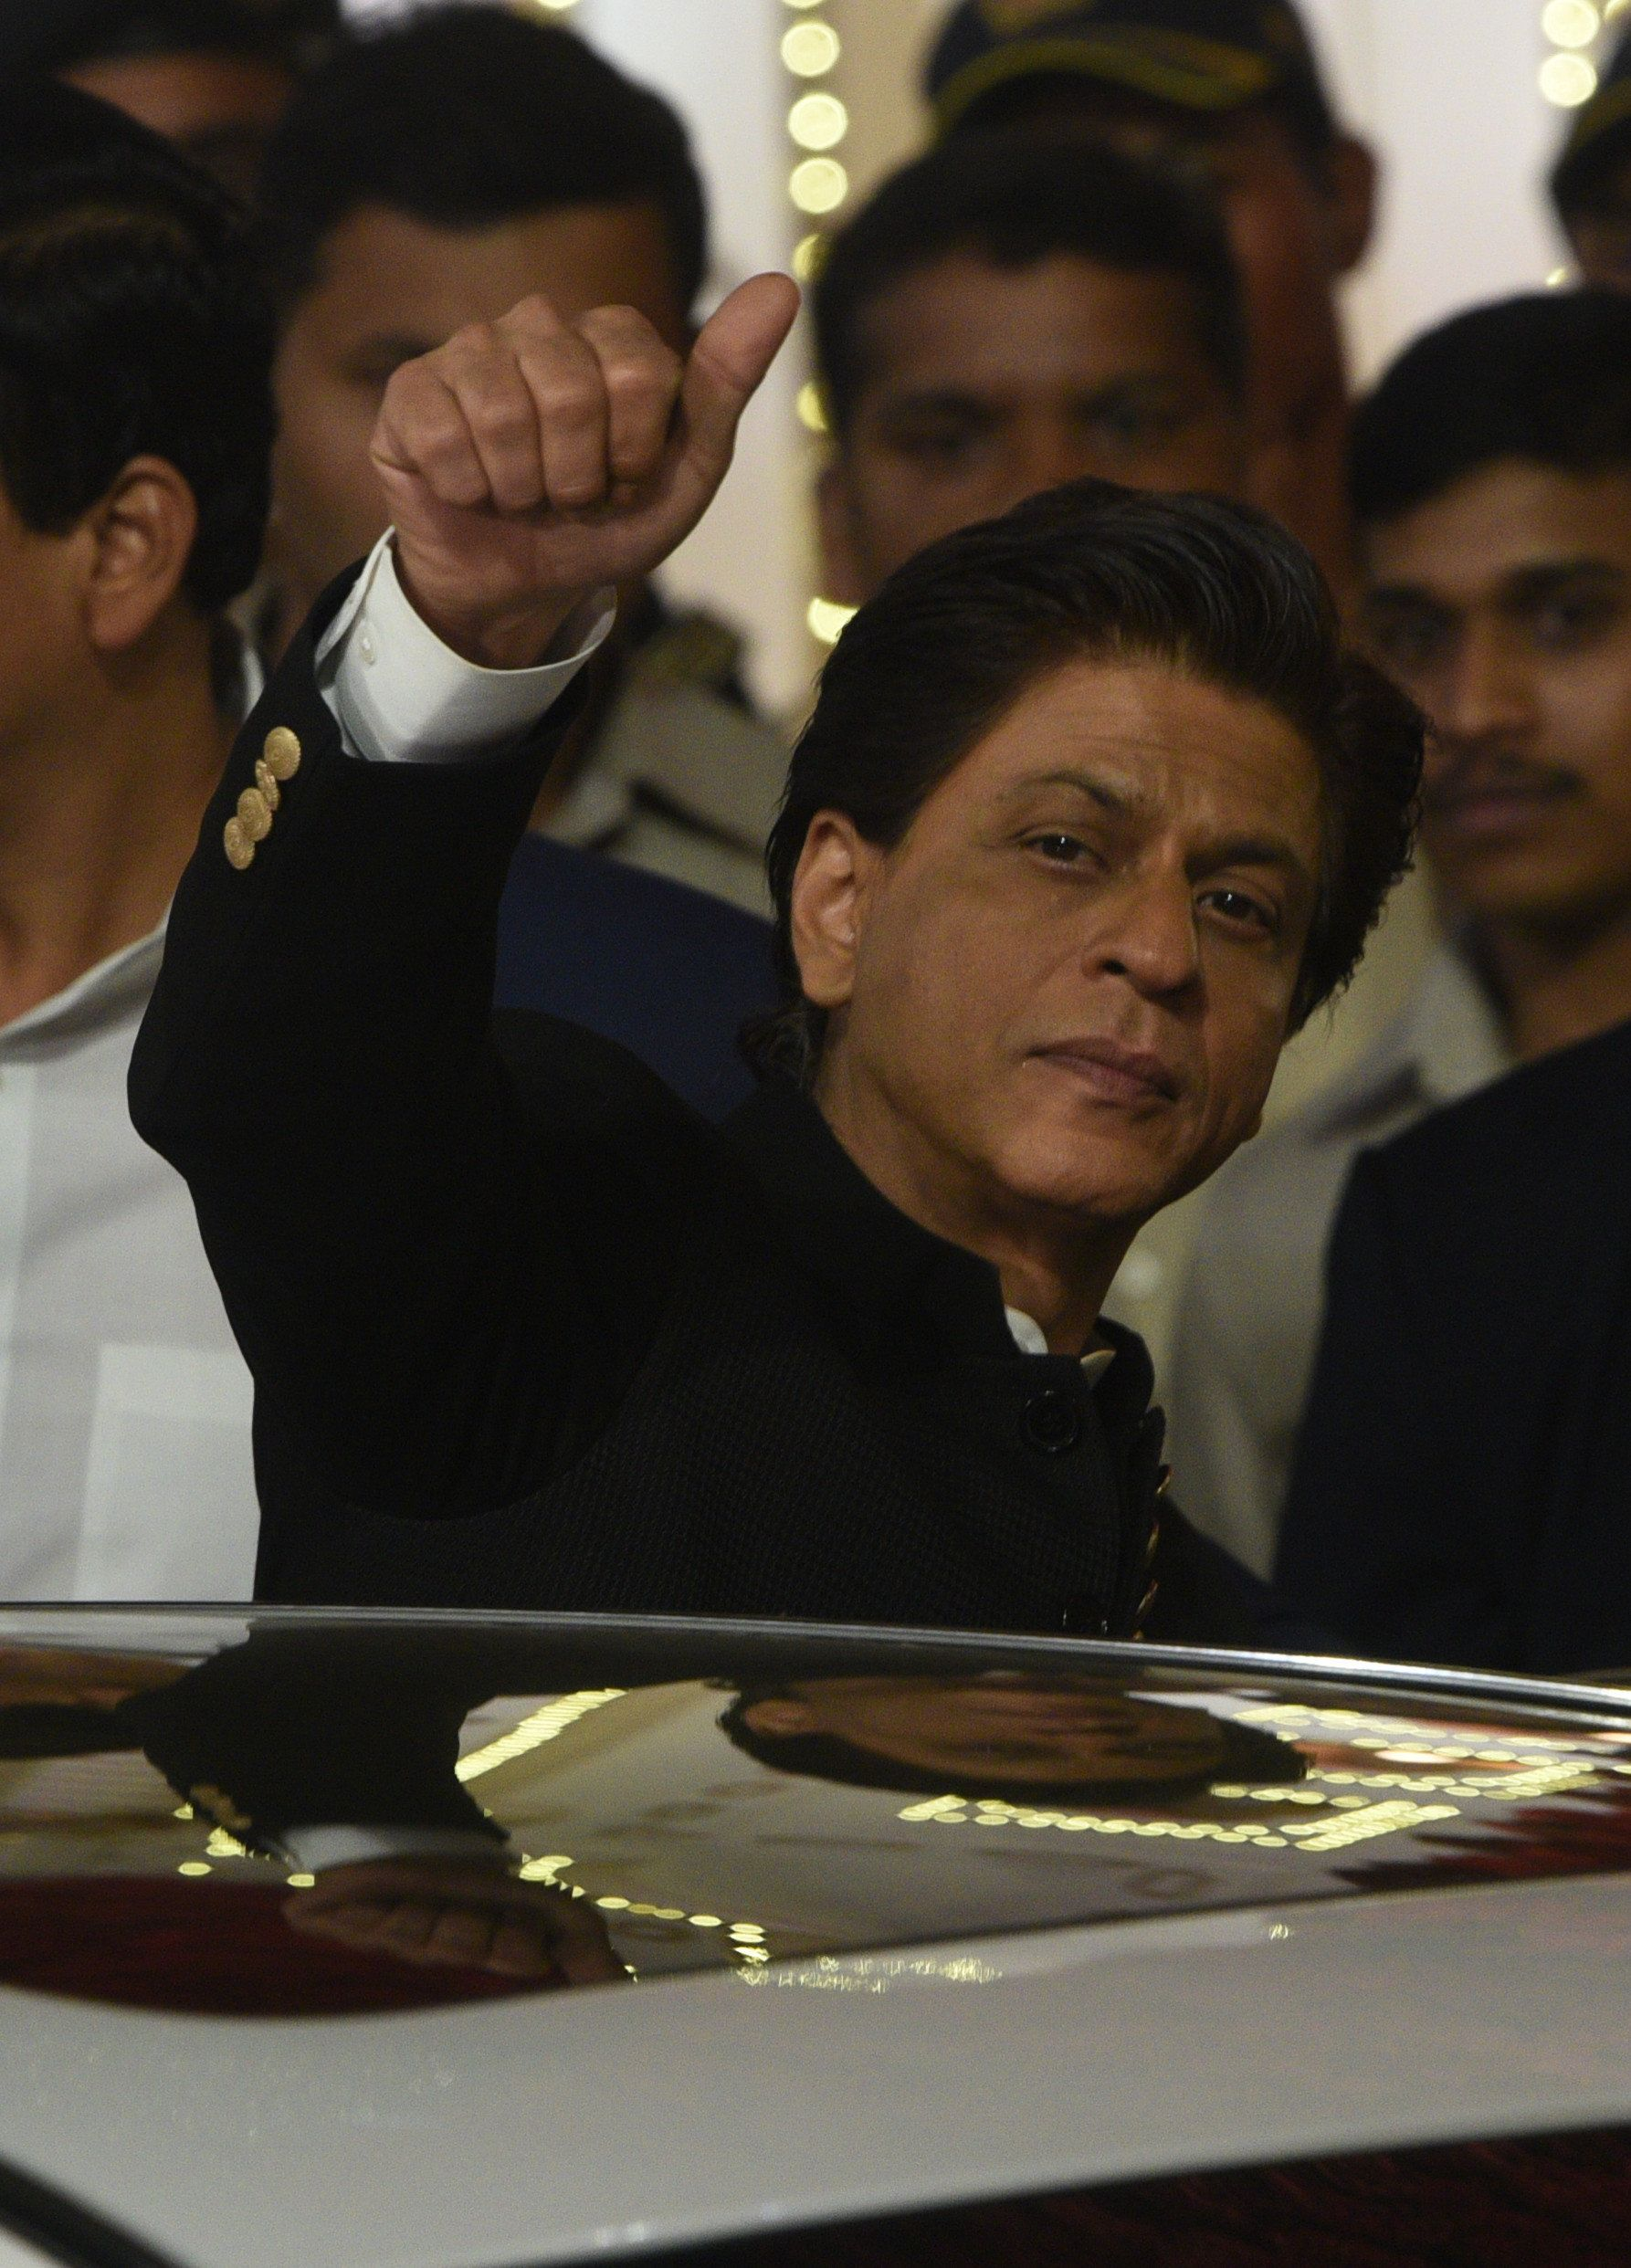 Watch: Shah Rukh Khan Roasting Film Critics At An Awards Show Is Pure